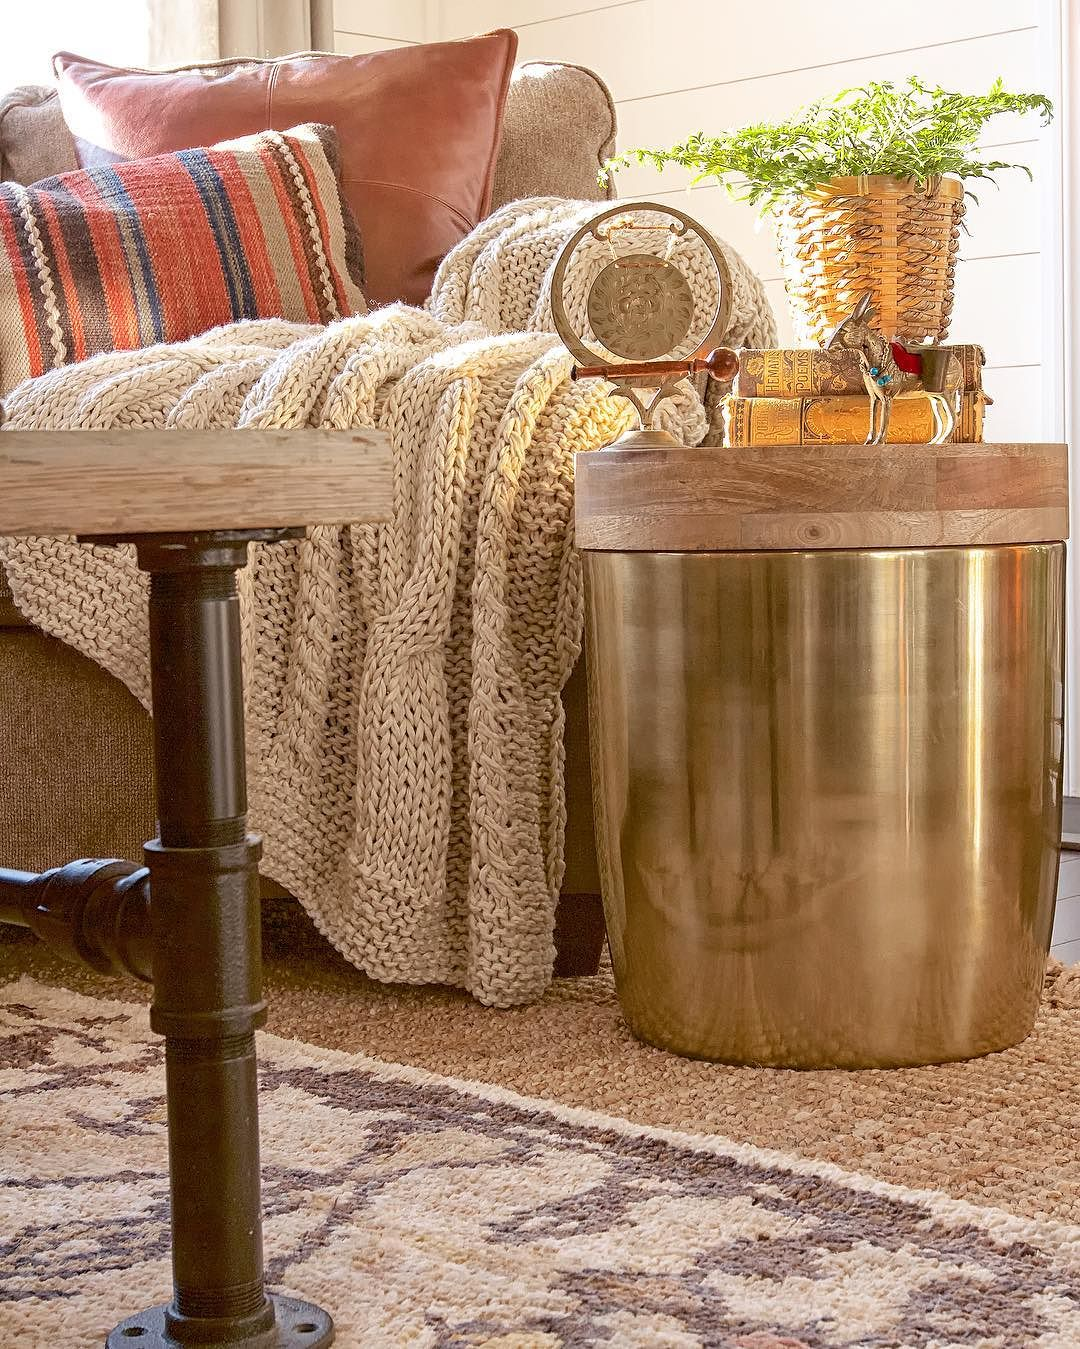 target threshold accent table tops storage drum gold finds pier papasan chair tall kitchen bar country trestle antique brass glass coffee white bookcase metal carpet colorful